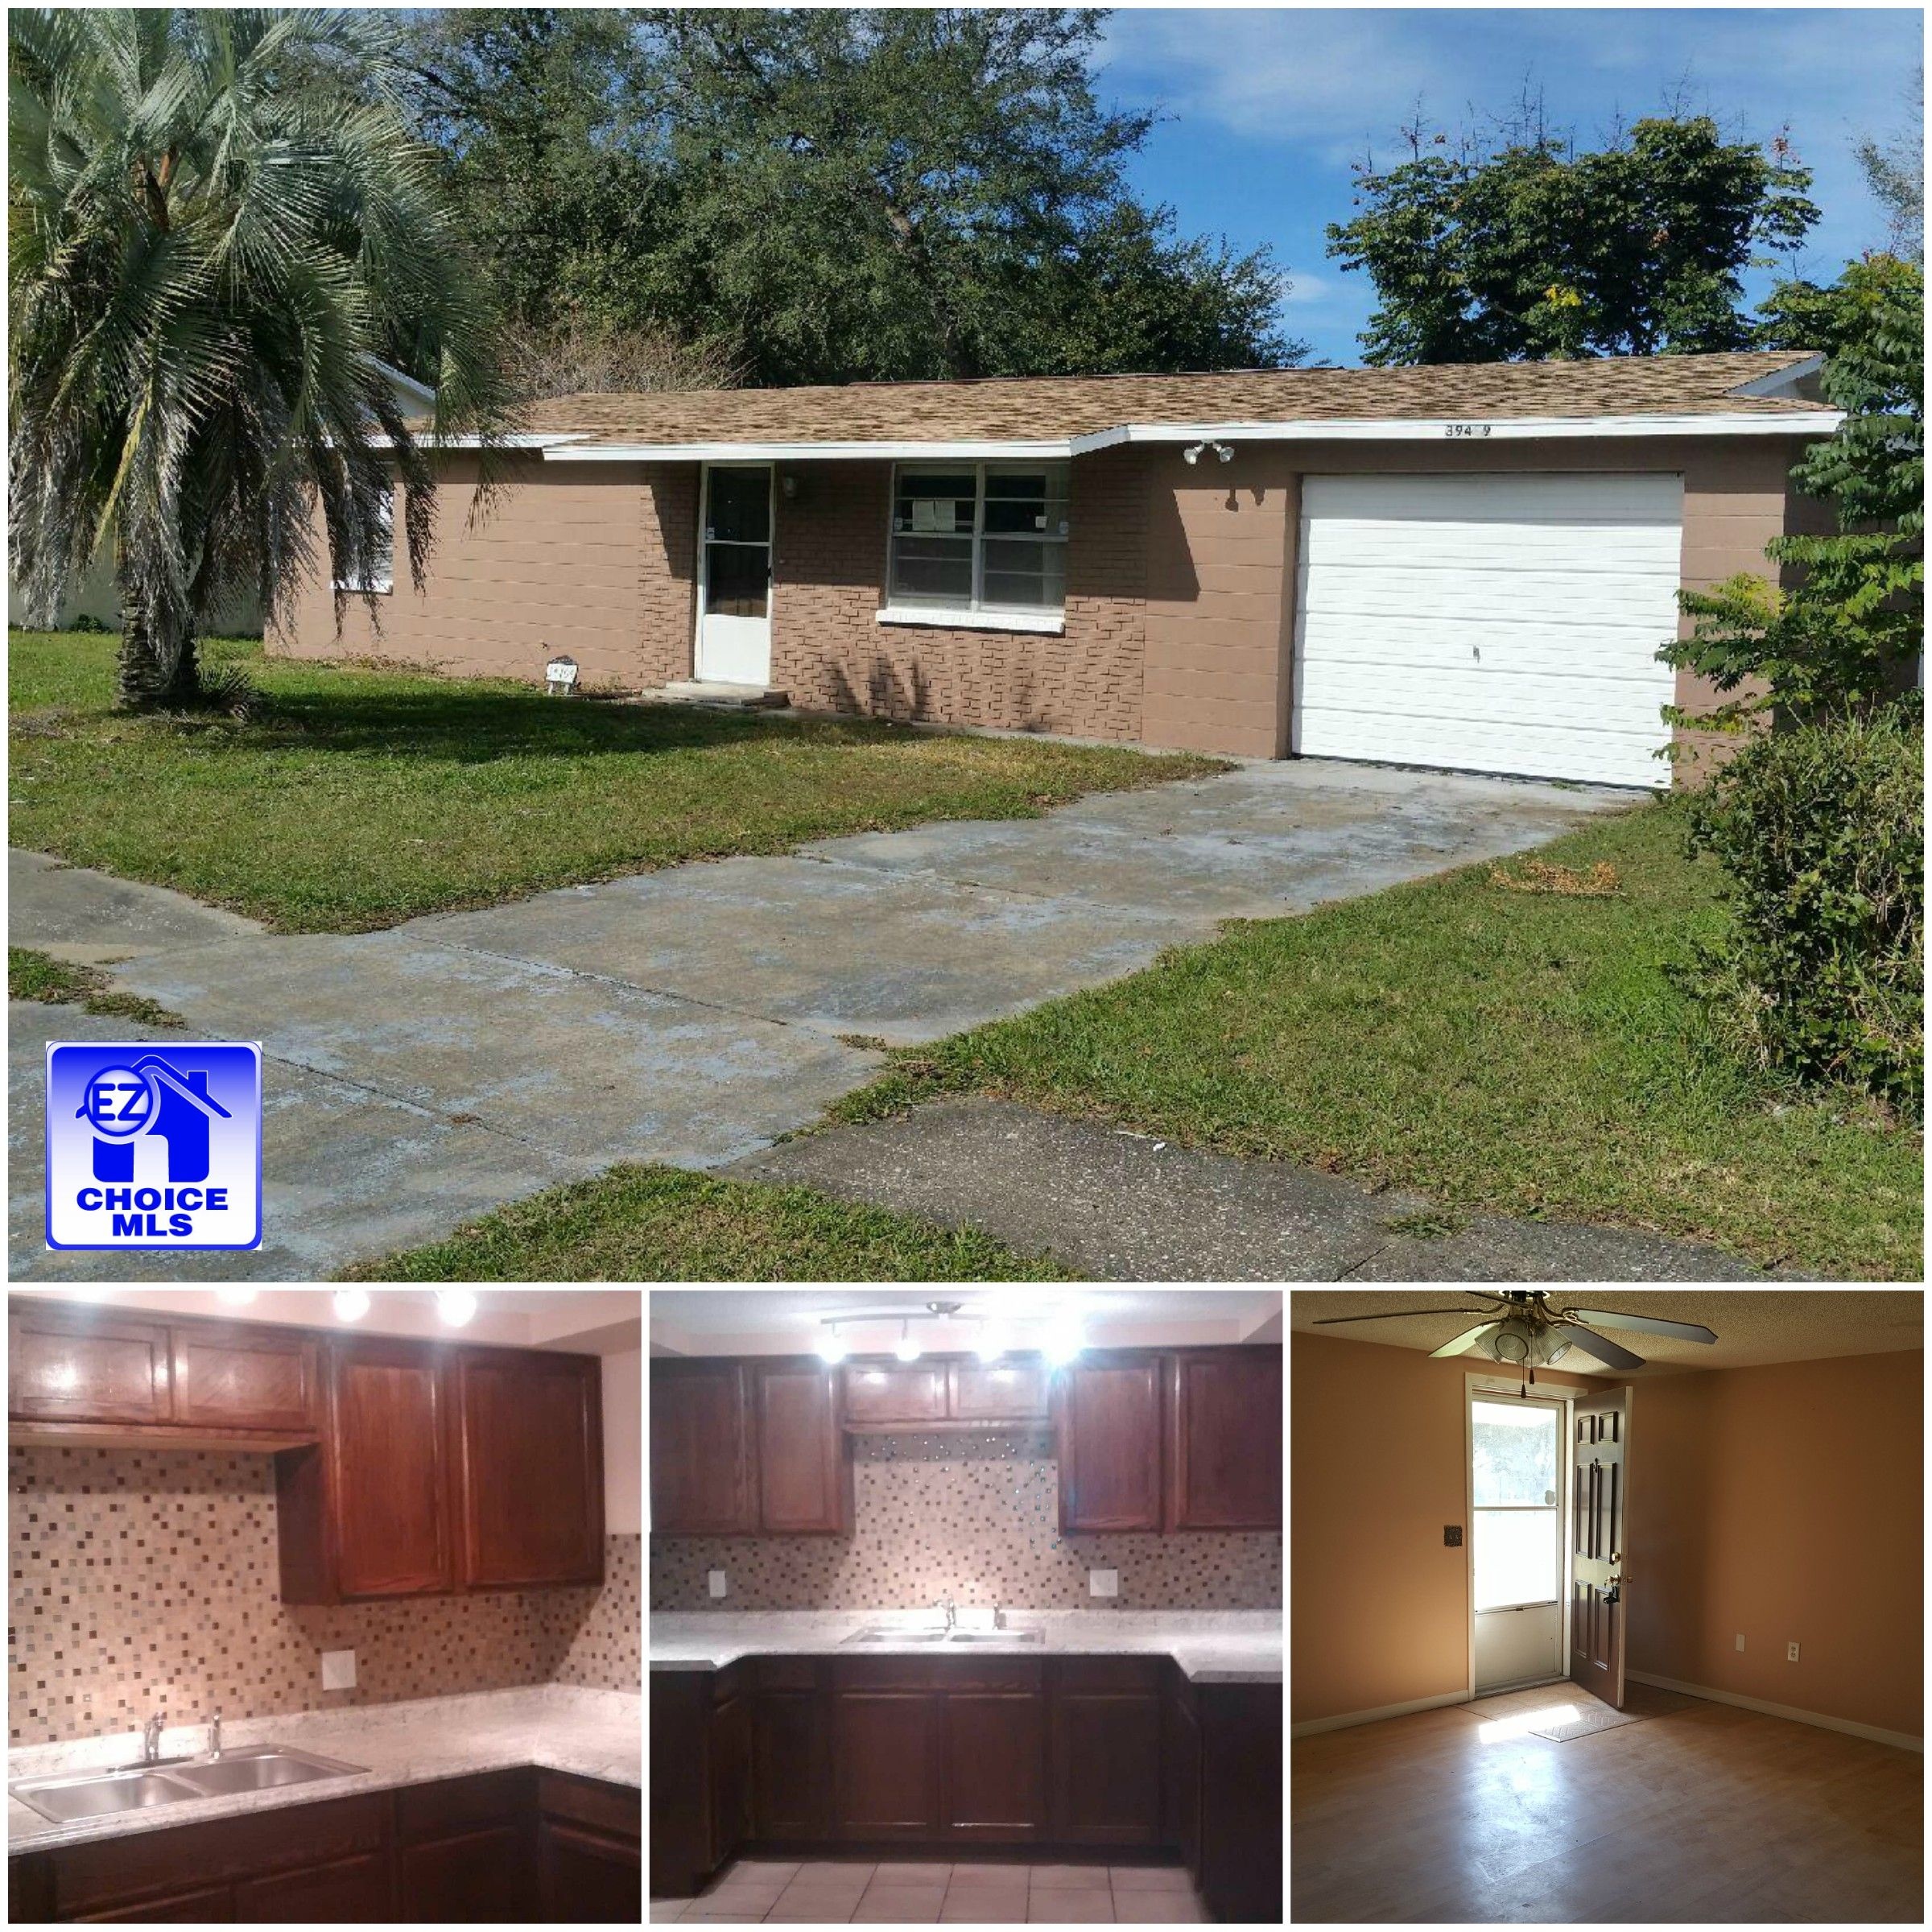 Wonderful Zephyrhills 3 Bedroom Home With Many New Features 39409 9th Ave Zephyrhills Fl 33542 Sale 92 000 N Florida Room Real Estate Office Roof Detail